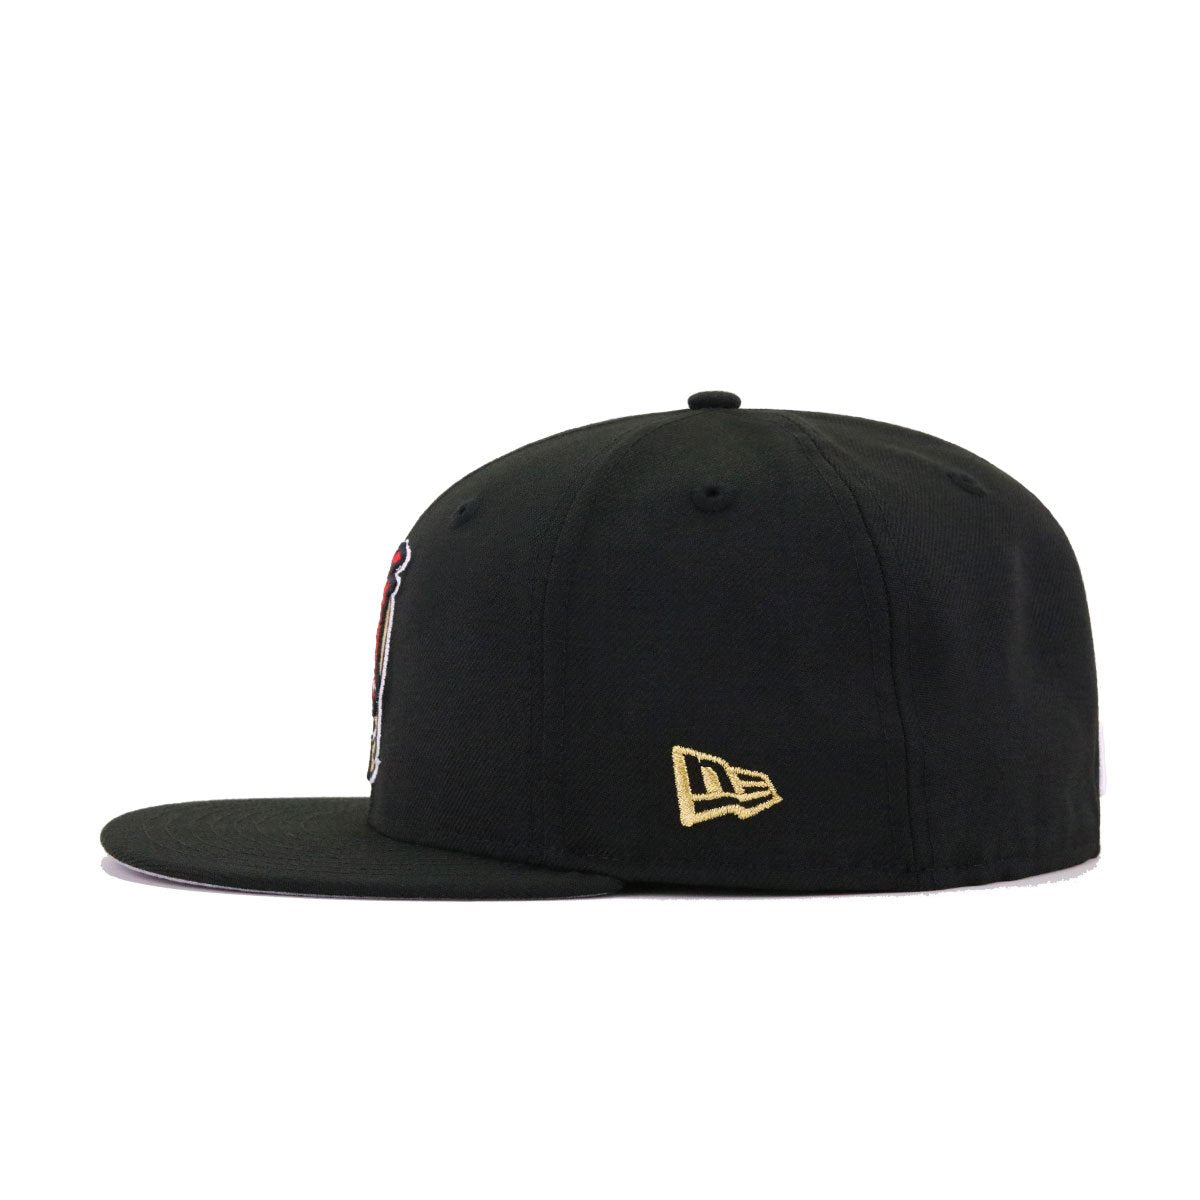 Ogden Raptors Black Metallic Gold Scarlet New Era 59Fifty Fitted